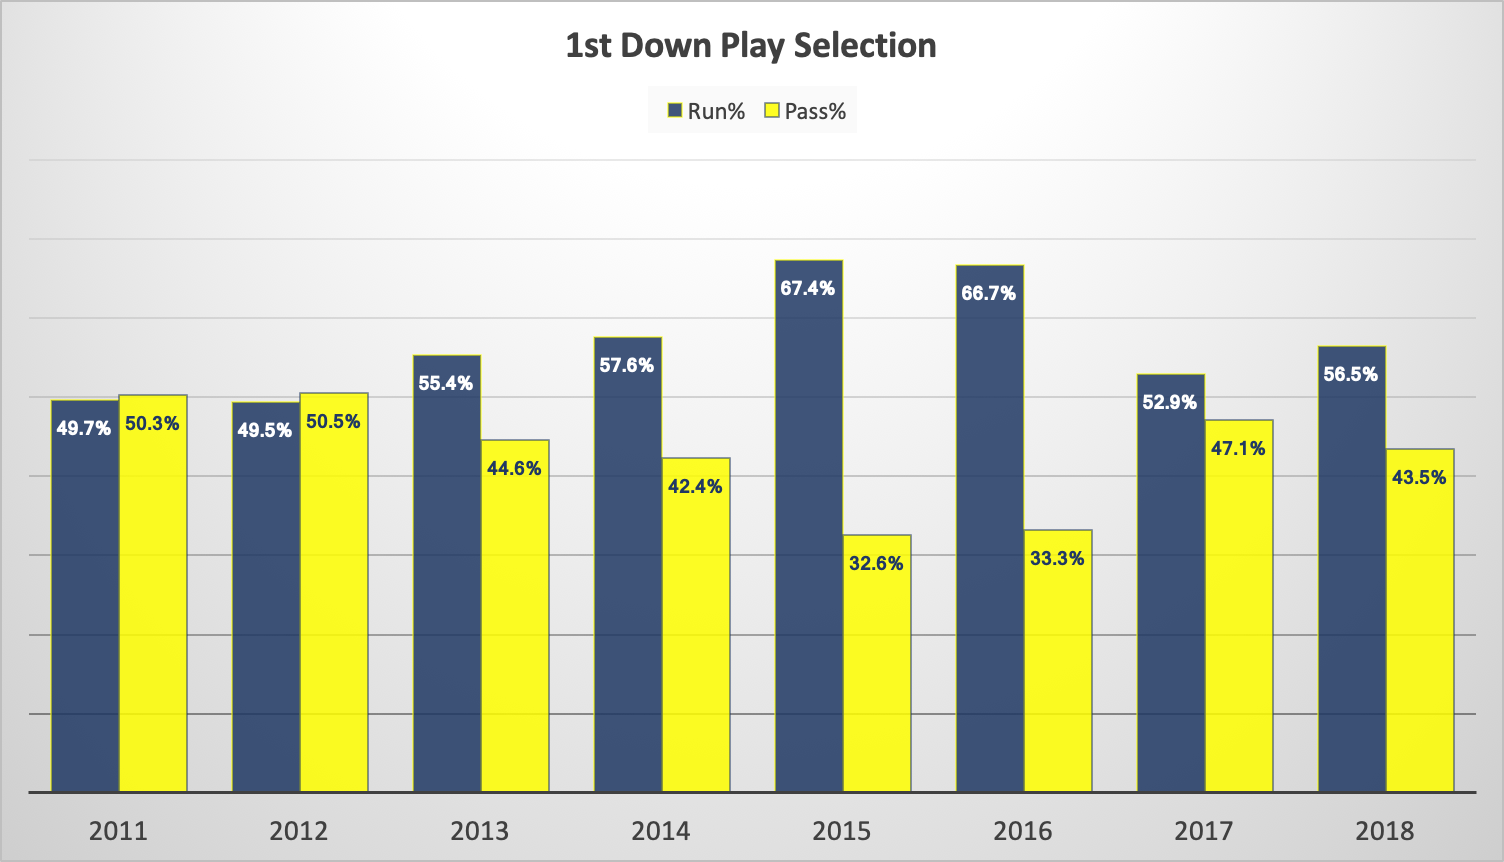 WVU 1st Down Play Selection